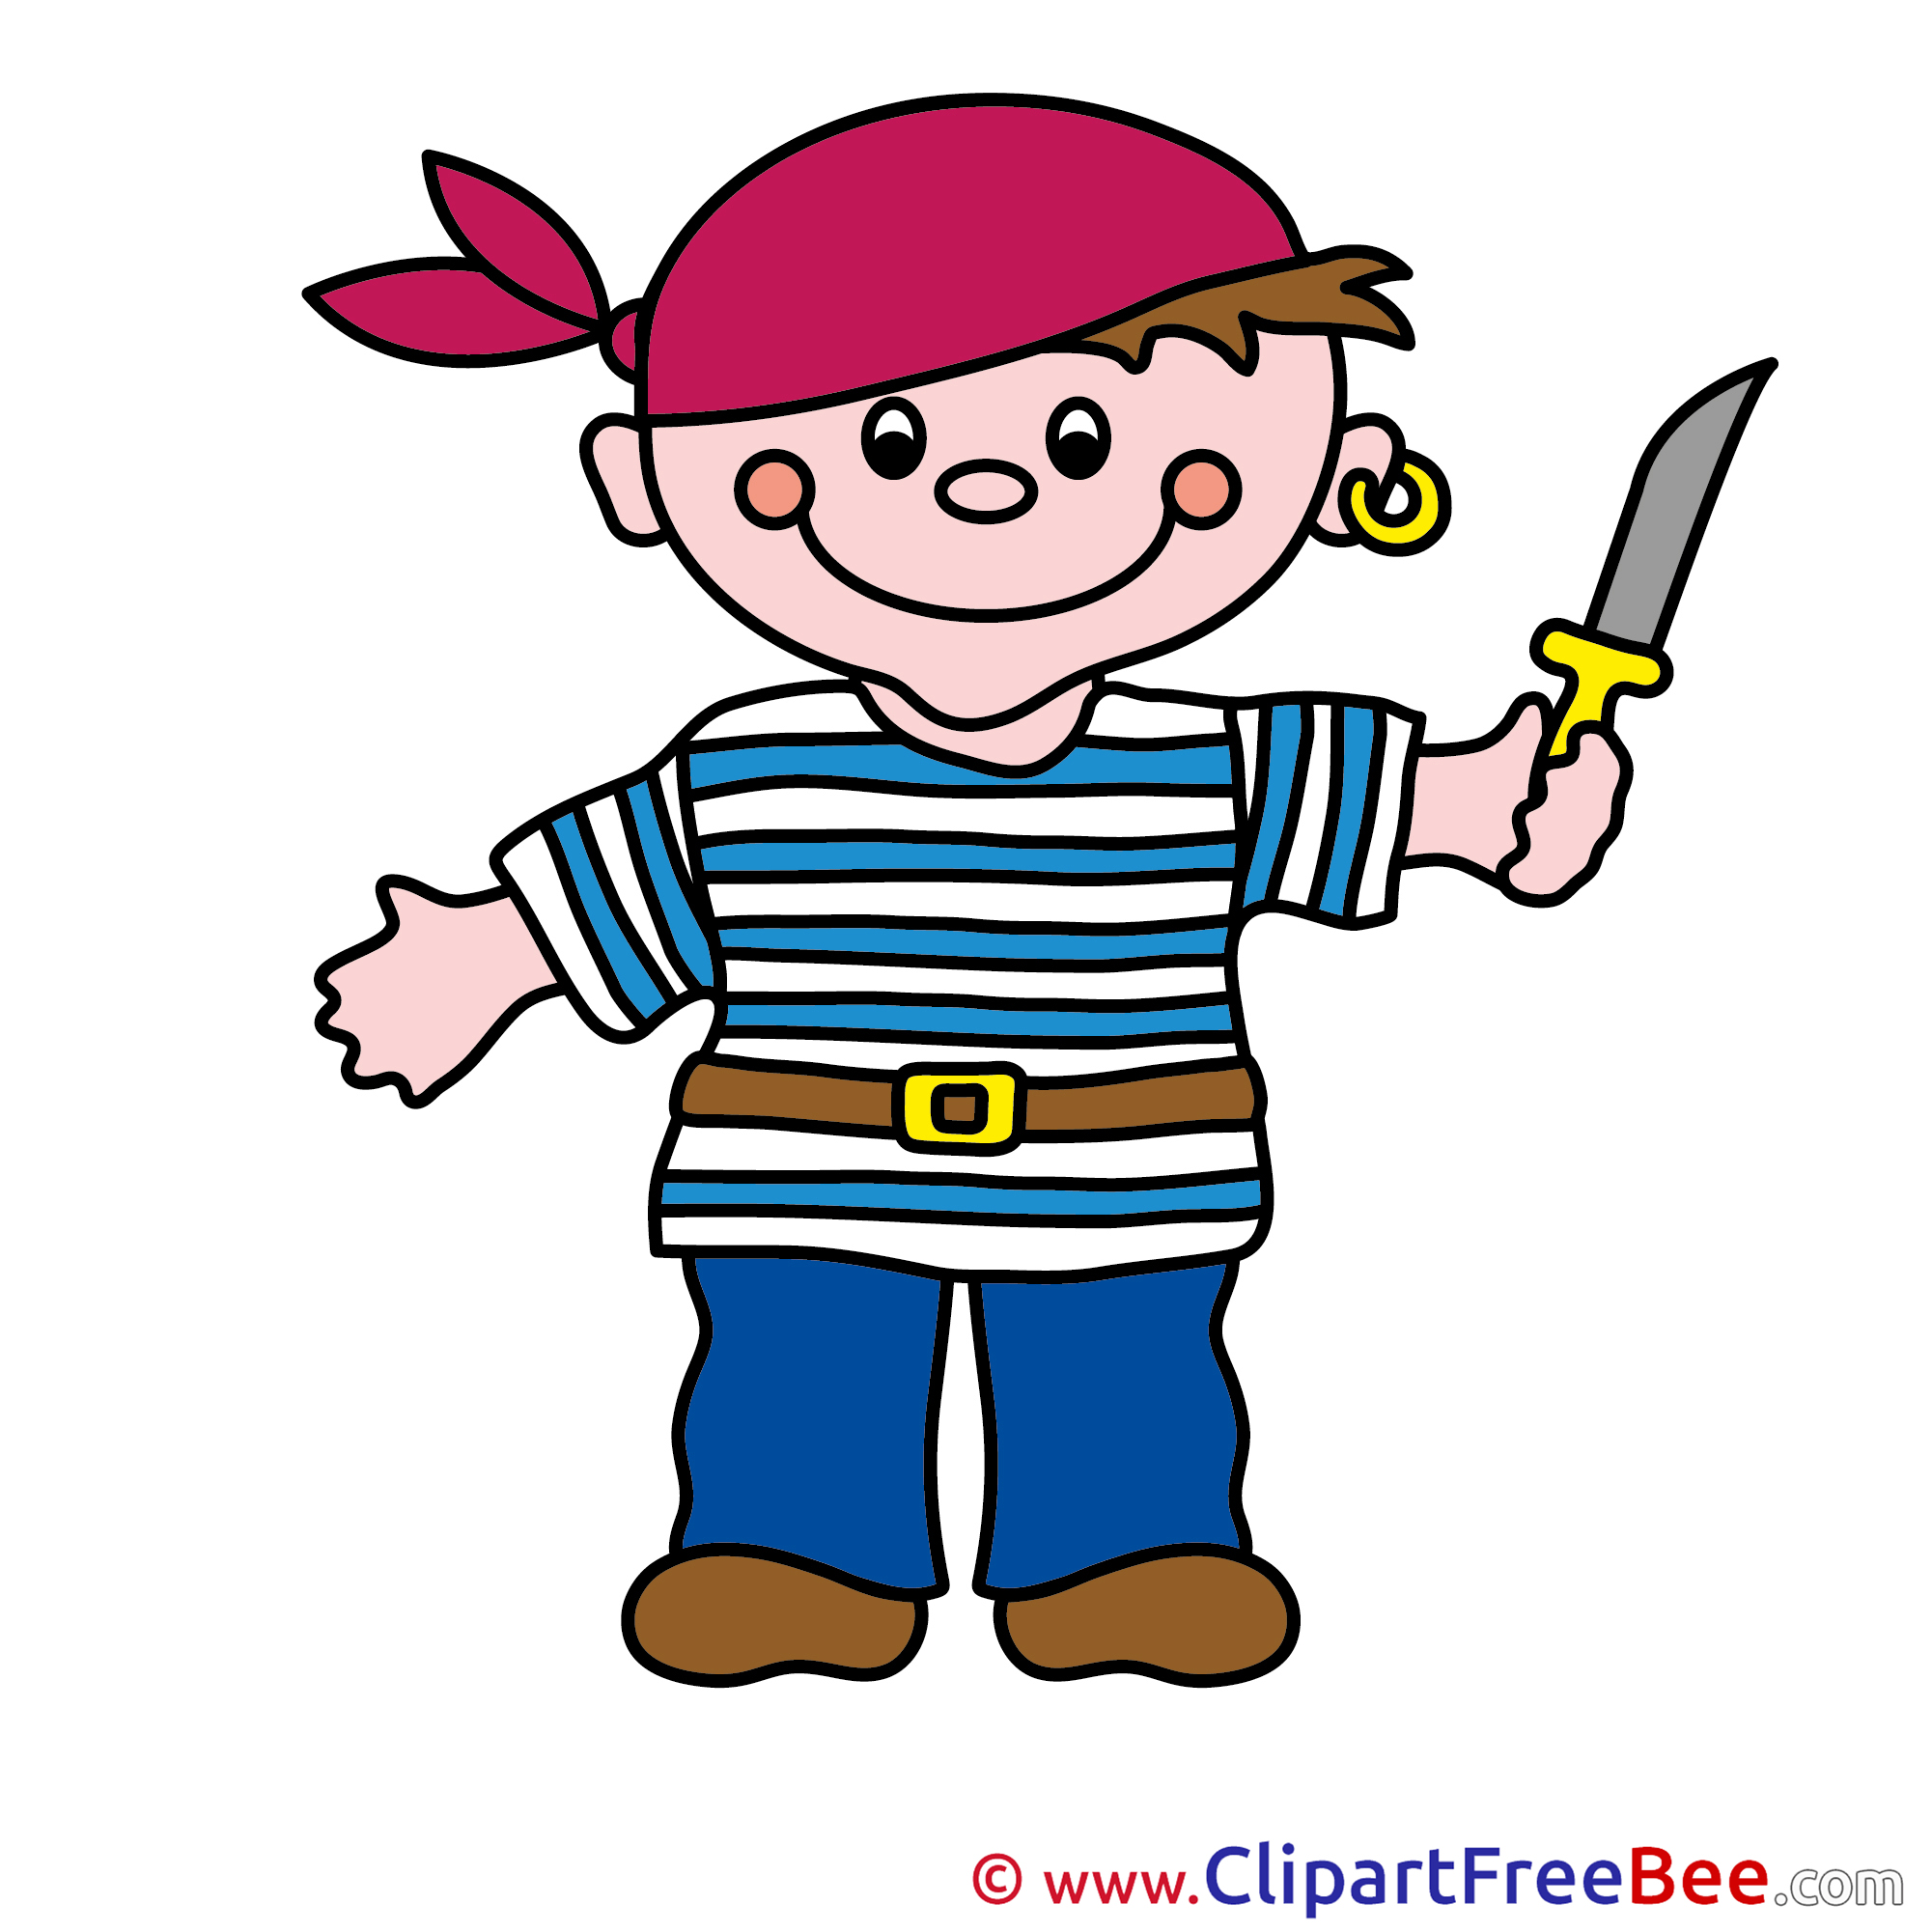 2001x2001 Knife Boy Pirate Fairy Tale Clip Art For Free